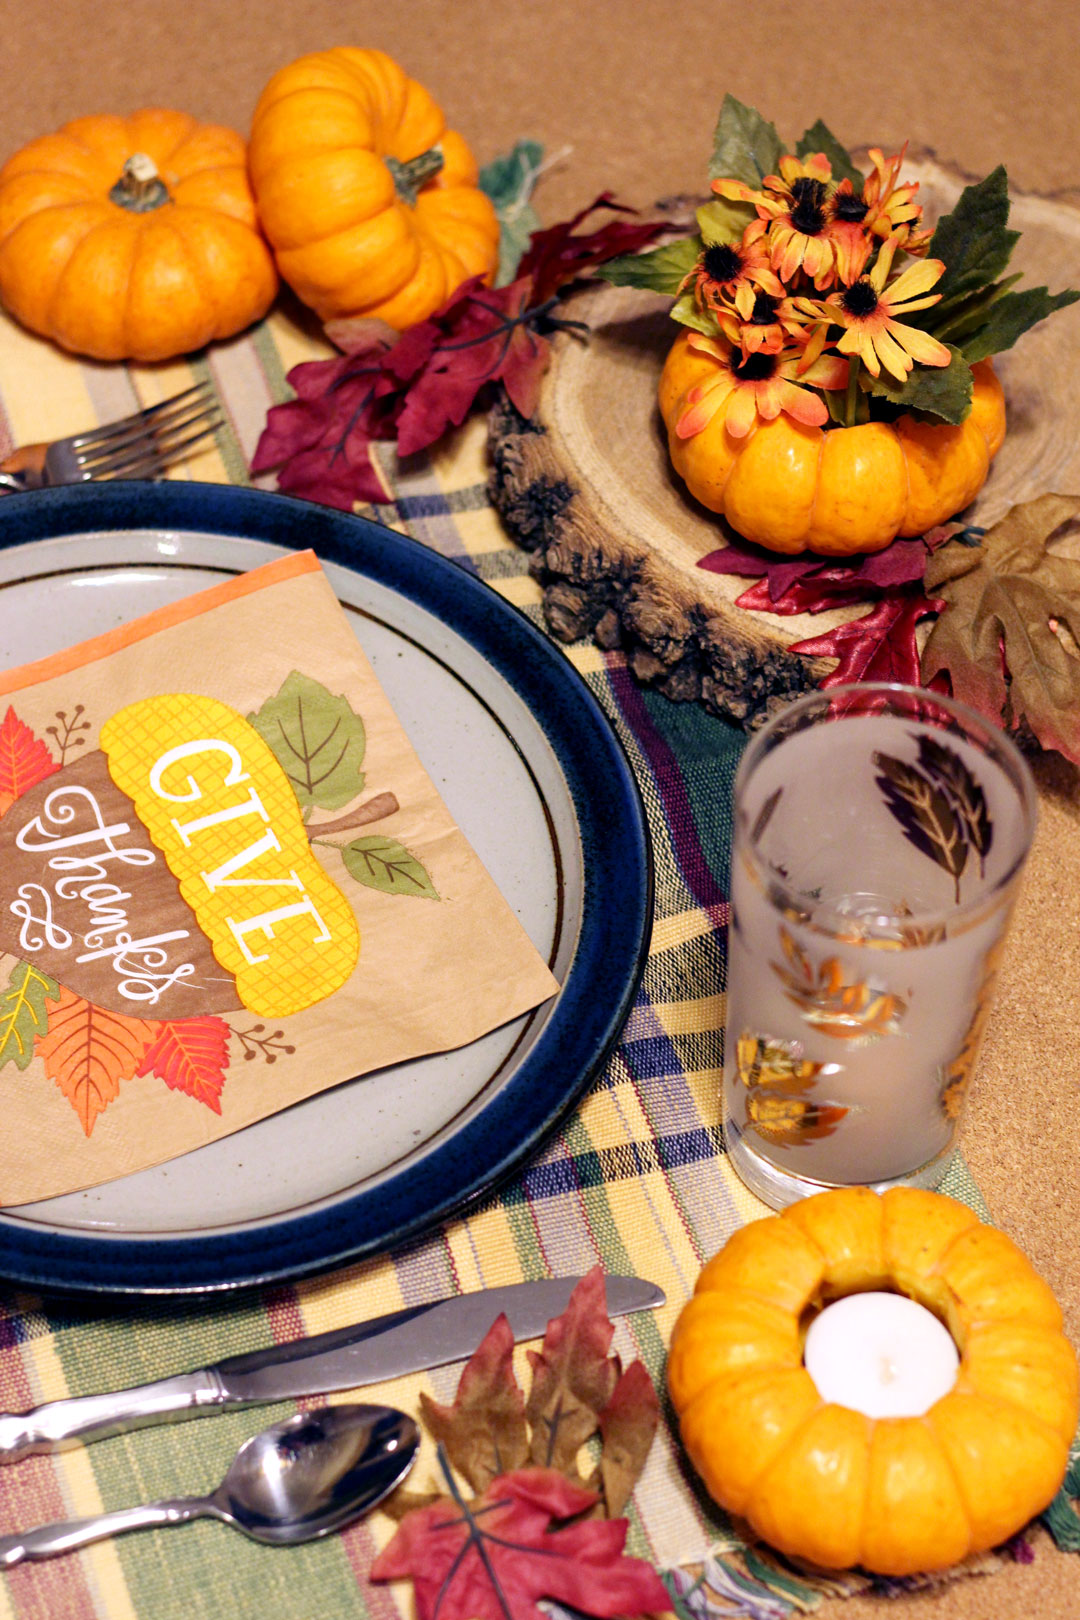 Make Easy Thanksgiving Table Decorations Or Favors From Miniature - 8 simple diy food centerpieces for thanksgiving to try